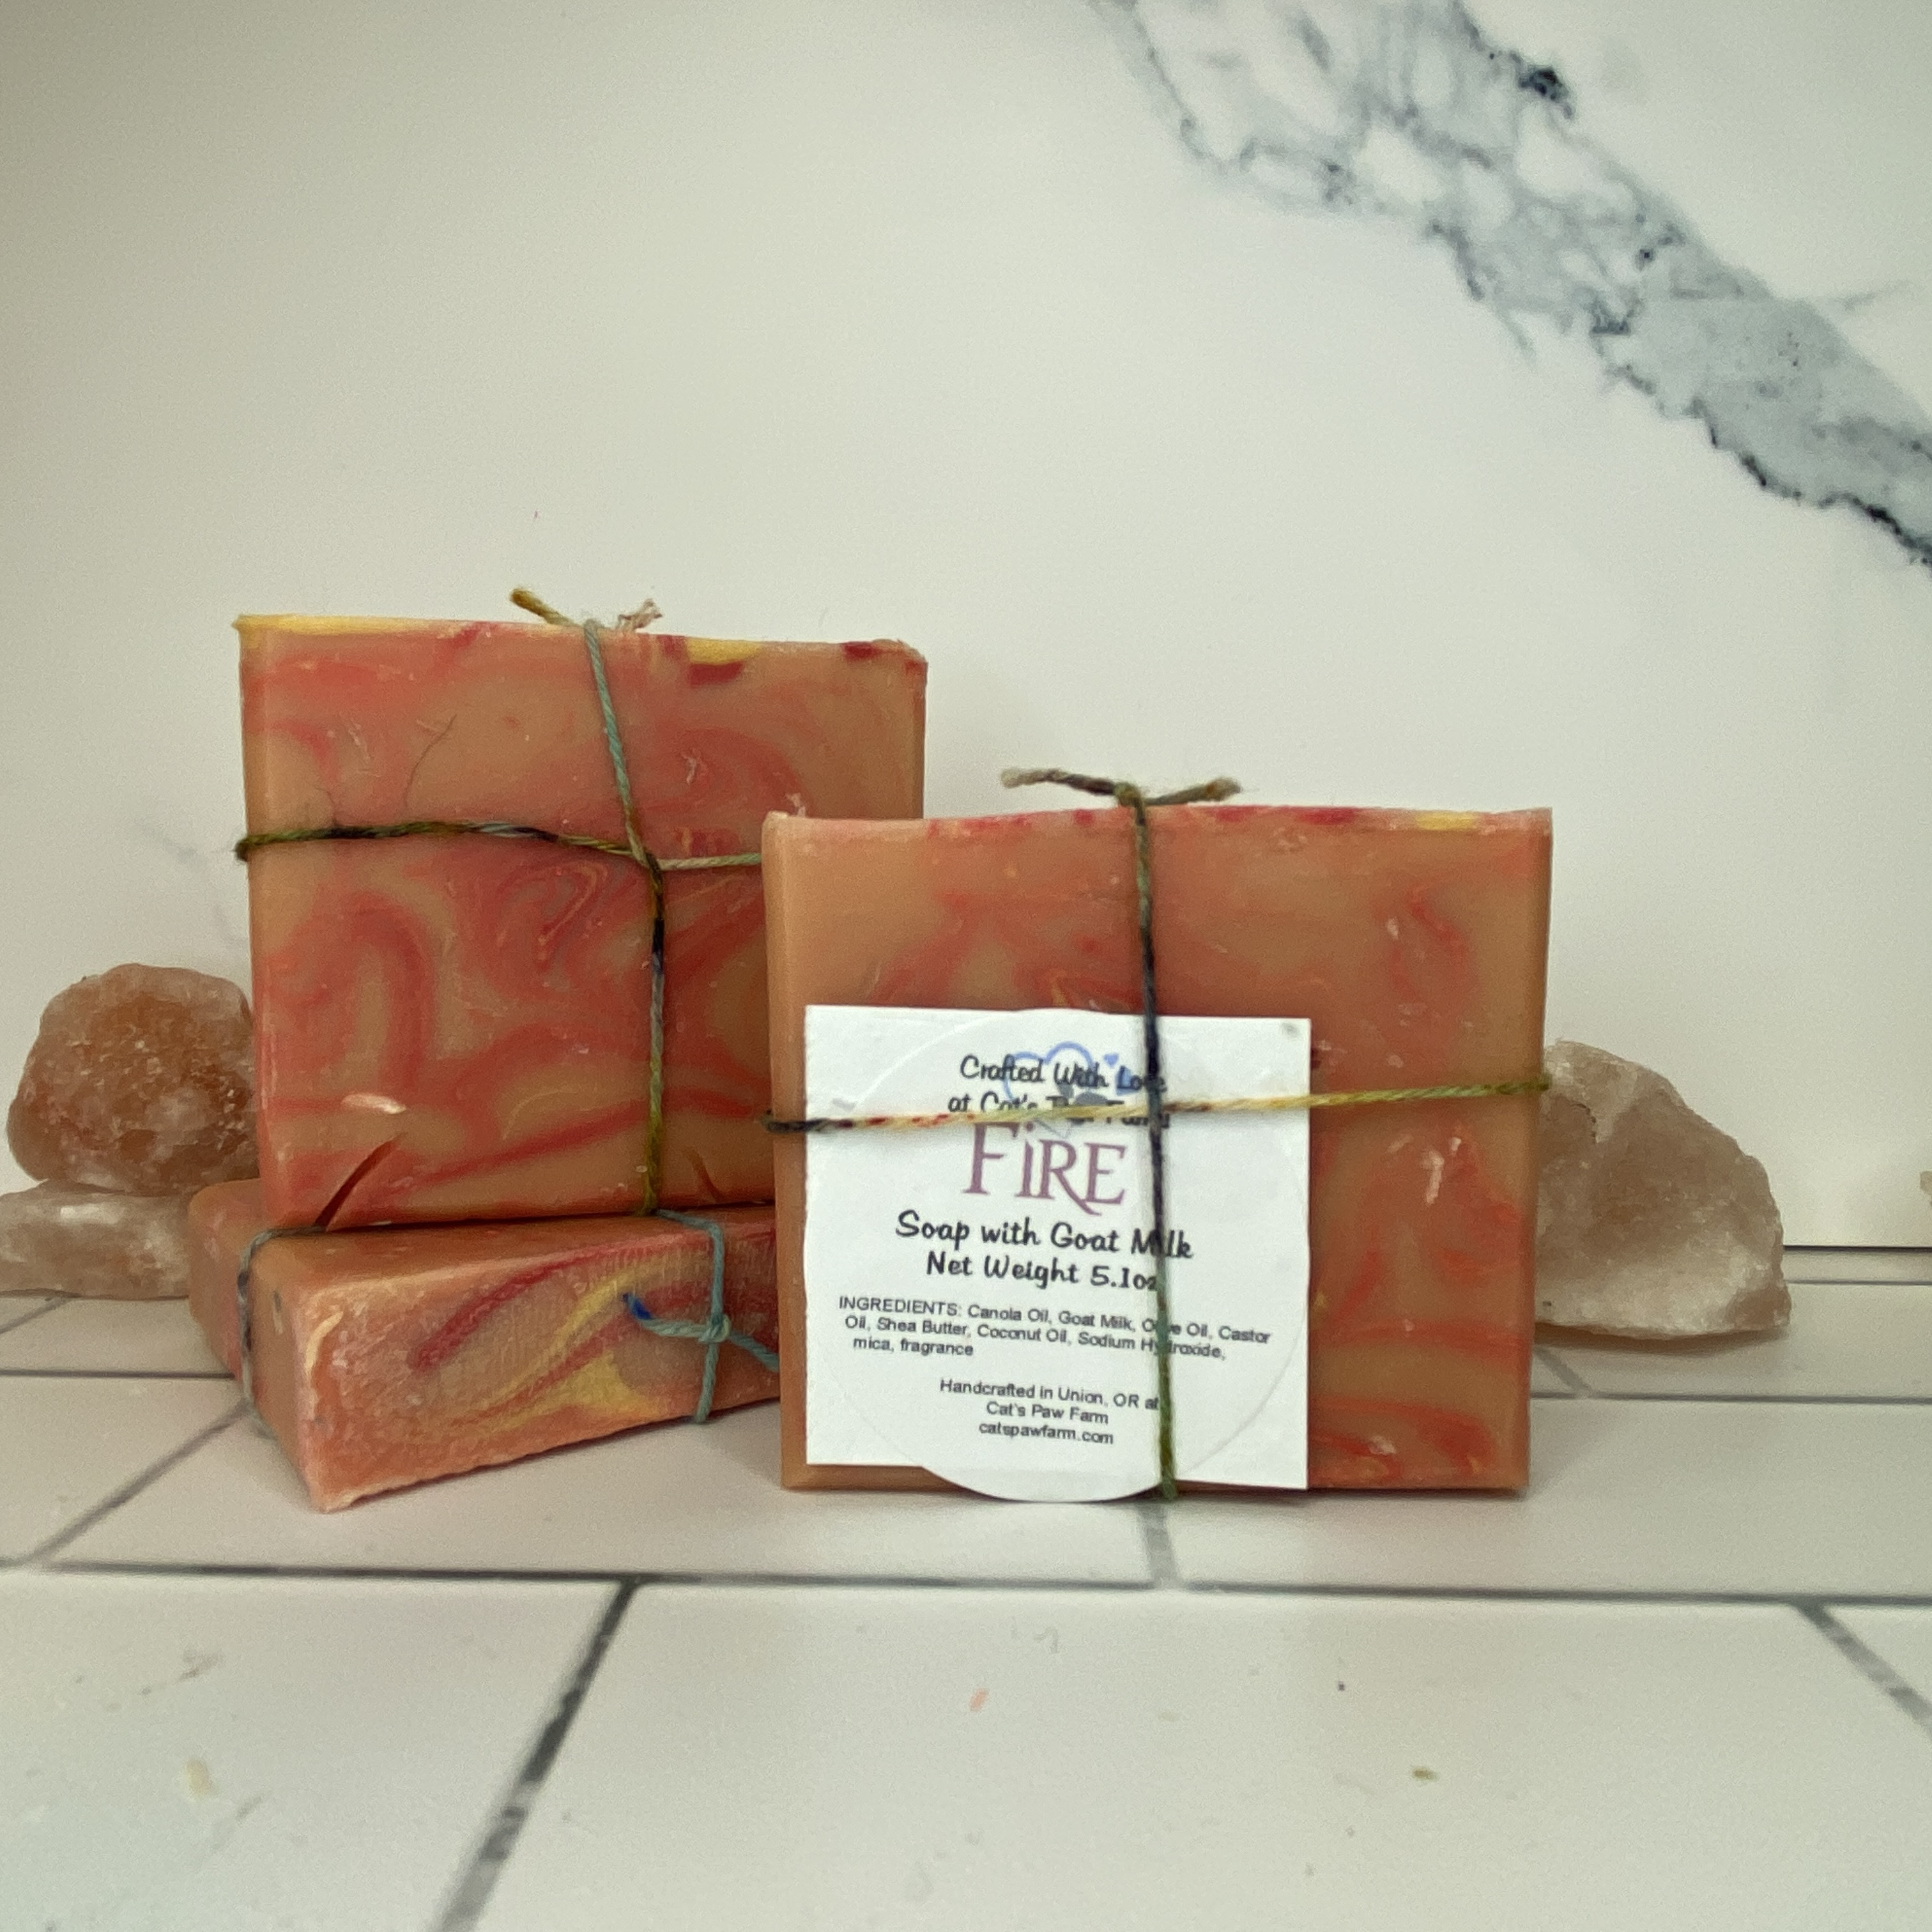 Fire Scented Soap with Goat Milk